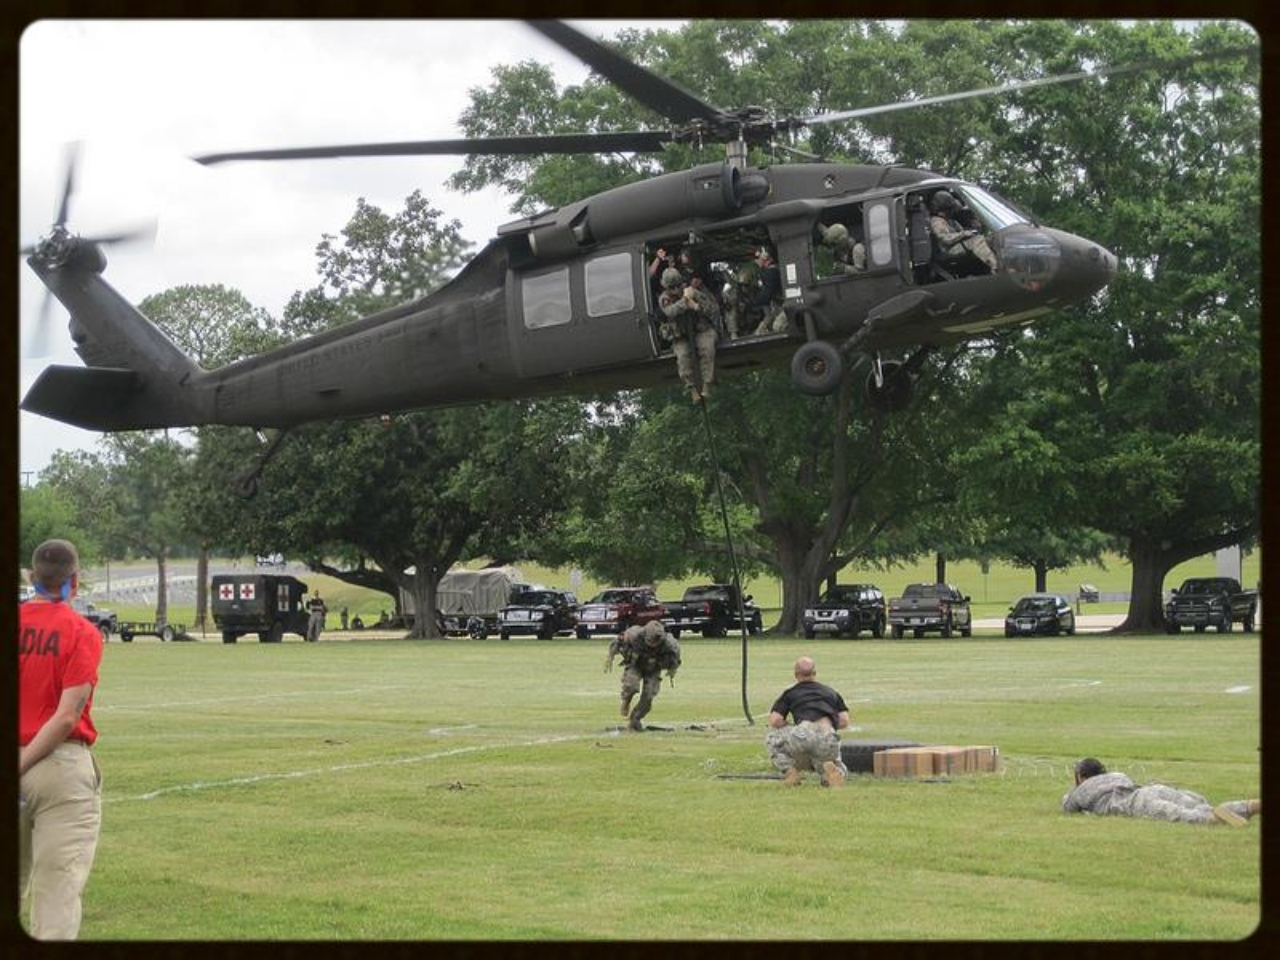 Sunday, April 15, 2012. Rangers fast roping from a UH-60 Black Hawk helicopter, Fort Benning, Georgia.